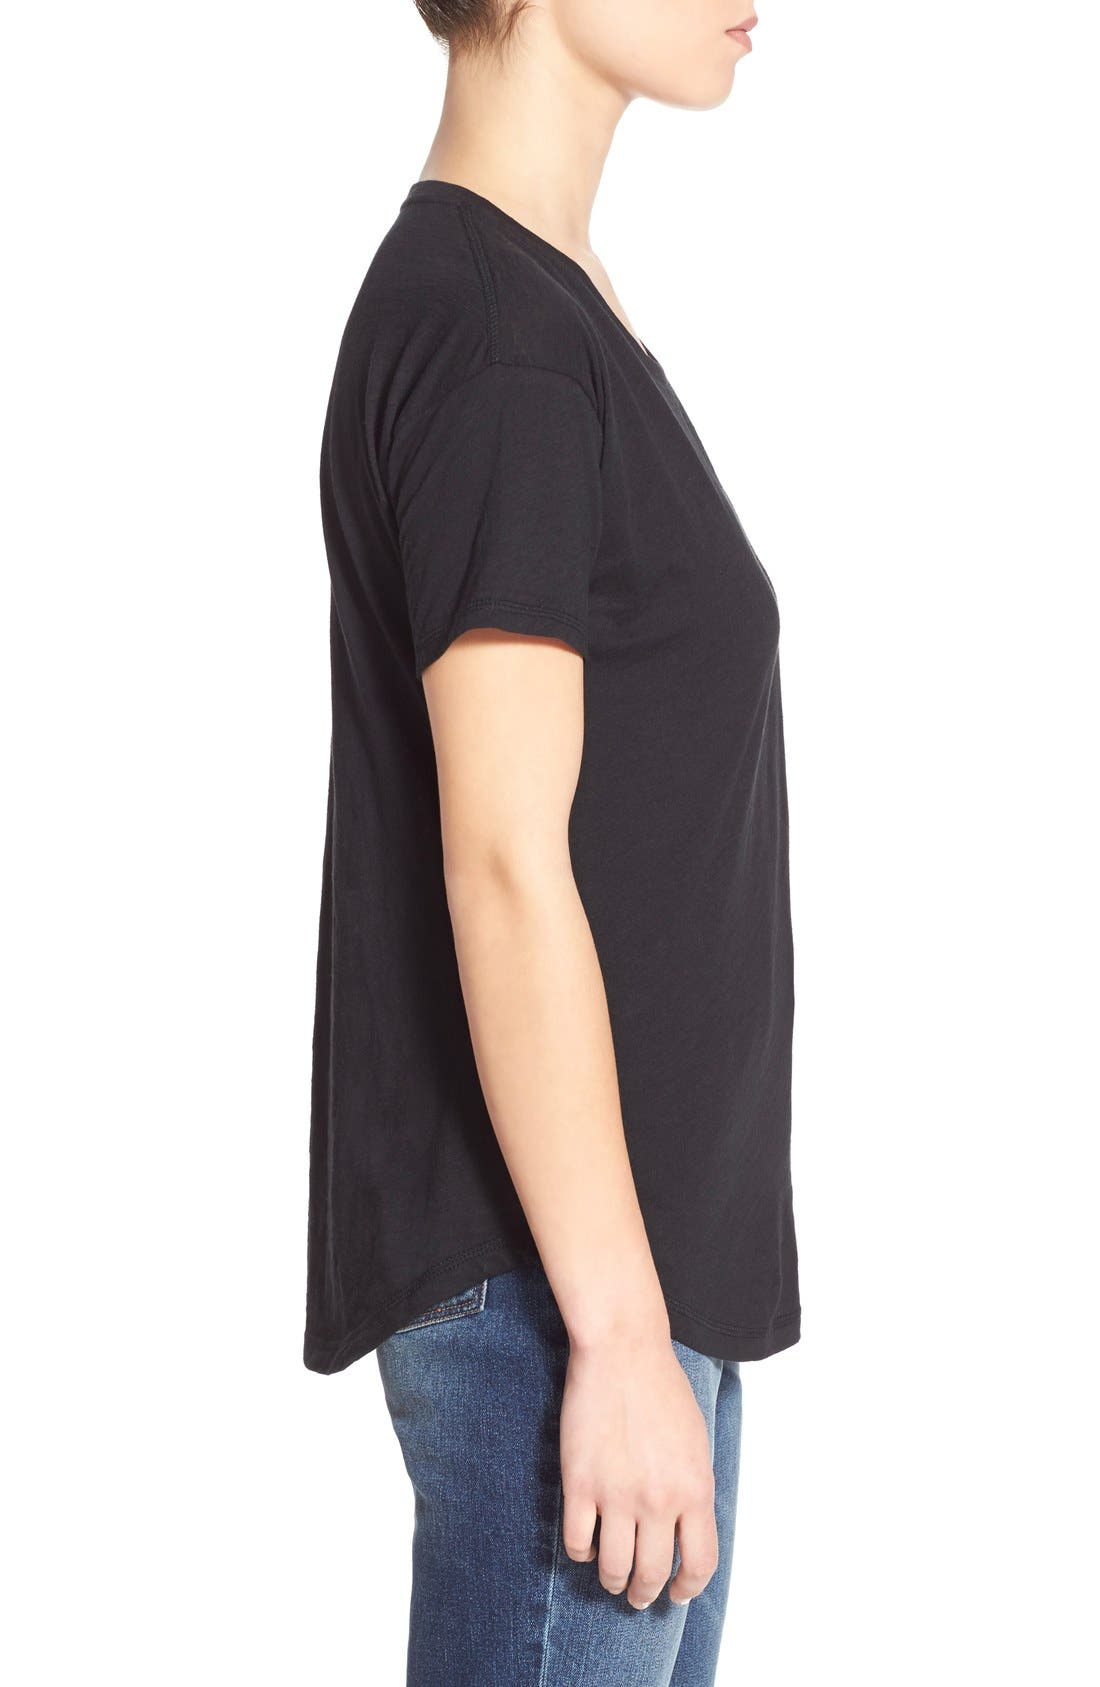 MADEWELL, 'Whisper' Cotton Crewneck Tee, Alternate thumbnail 6, color, TRUE BLACK